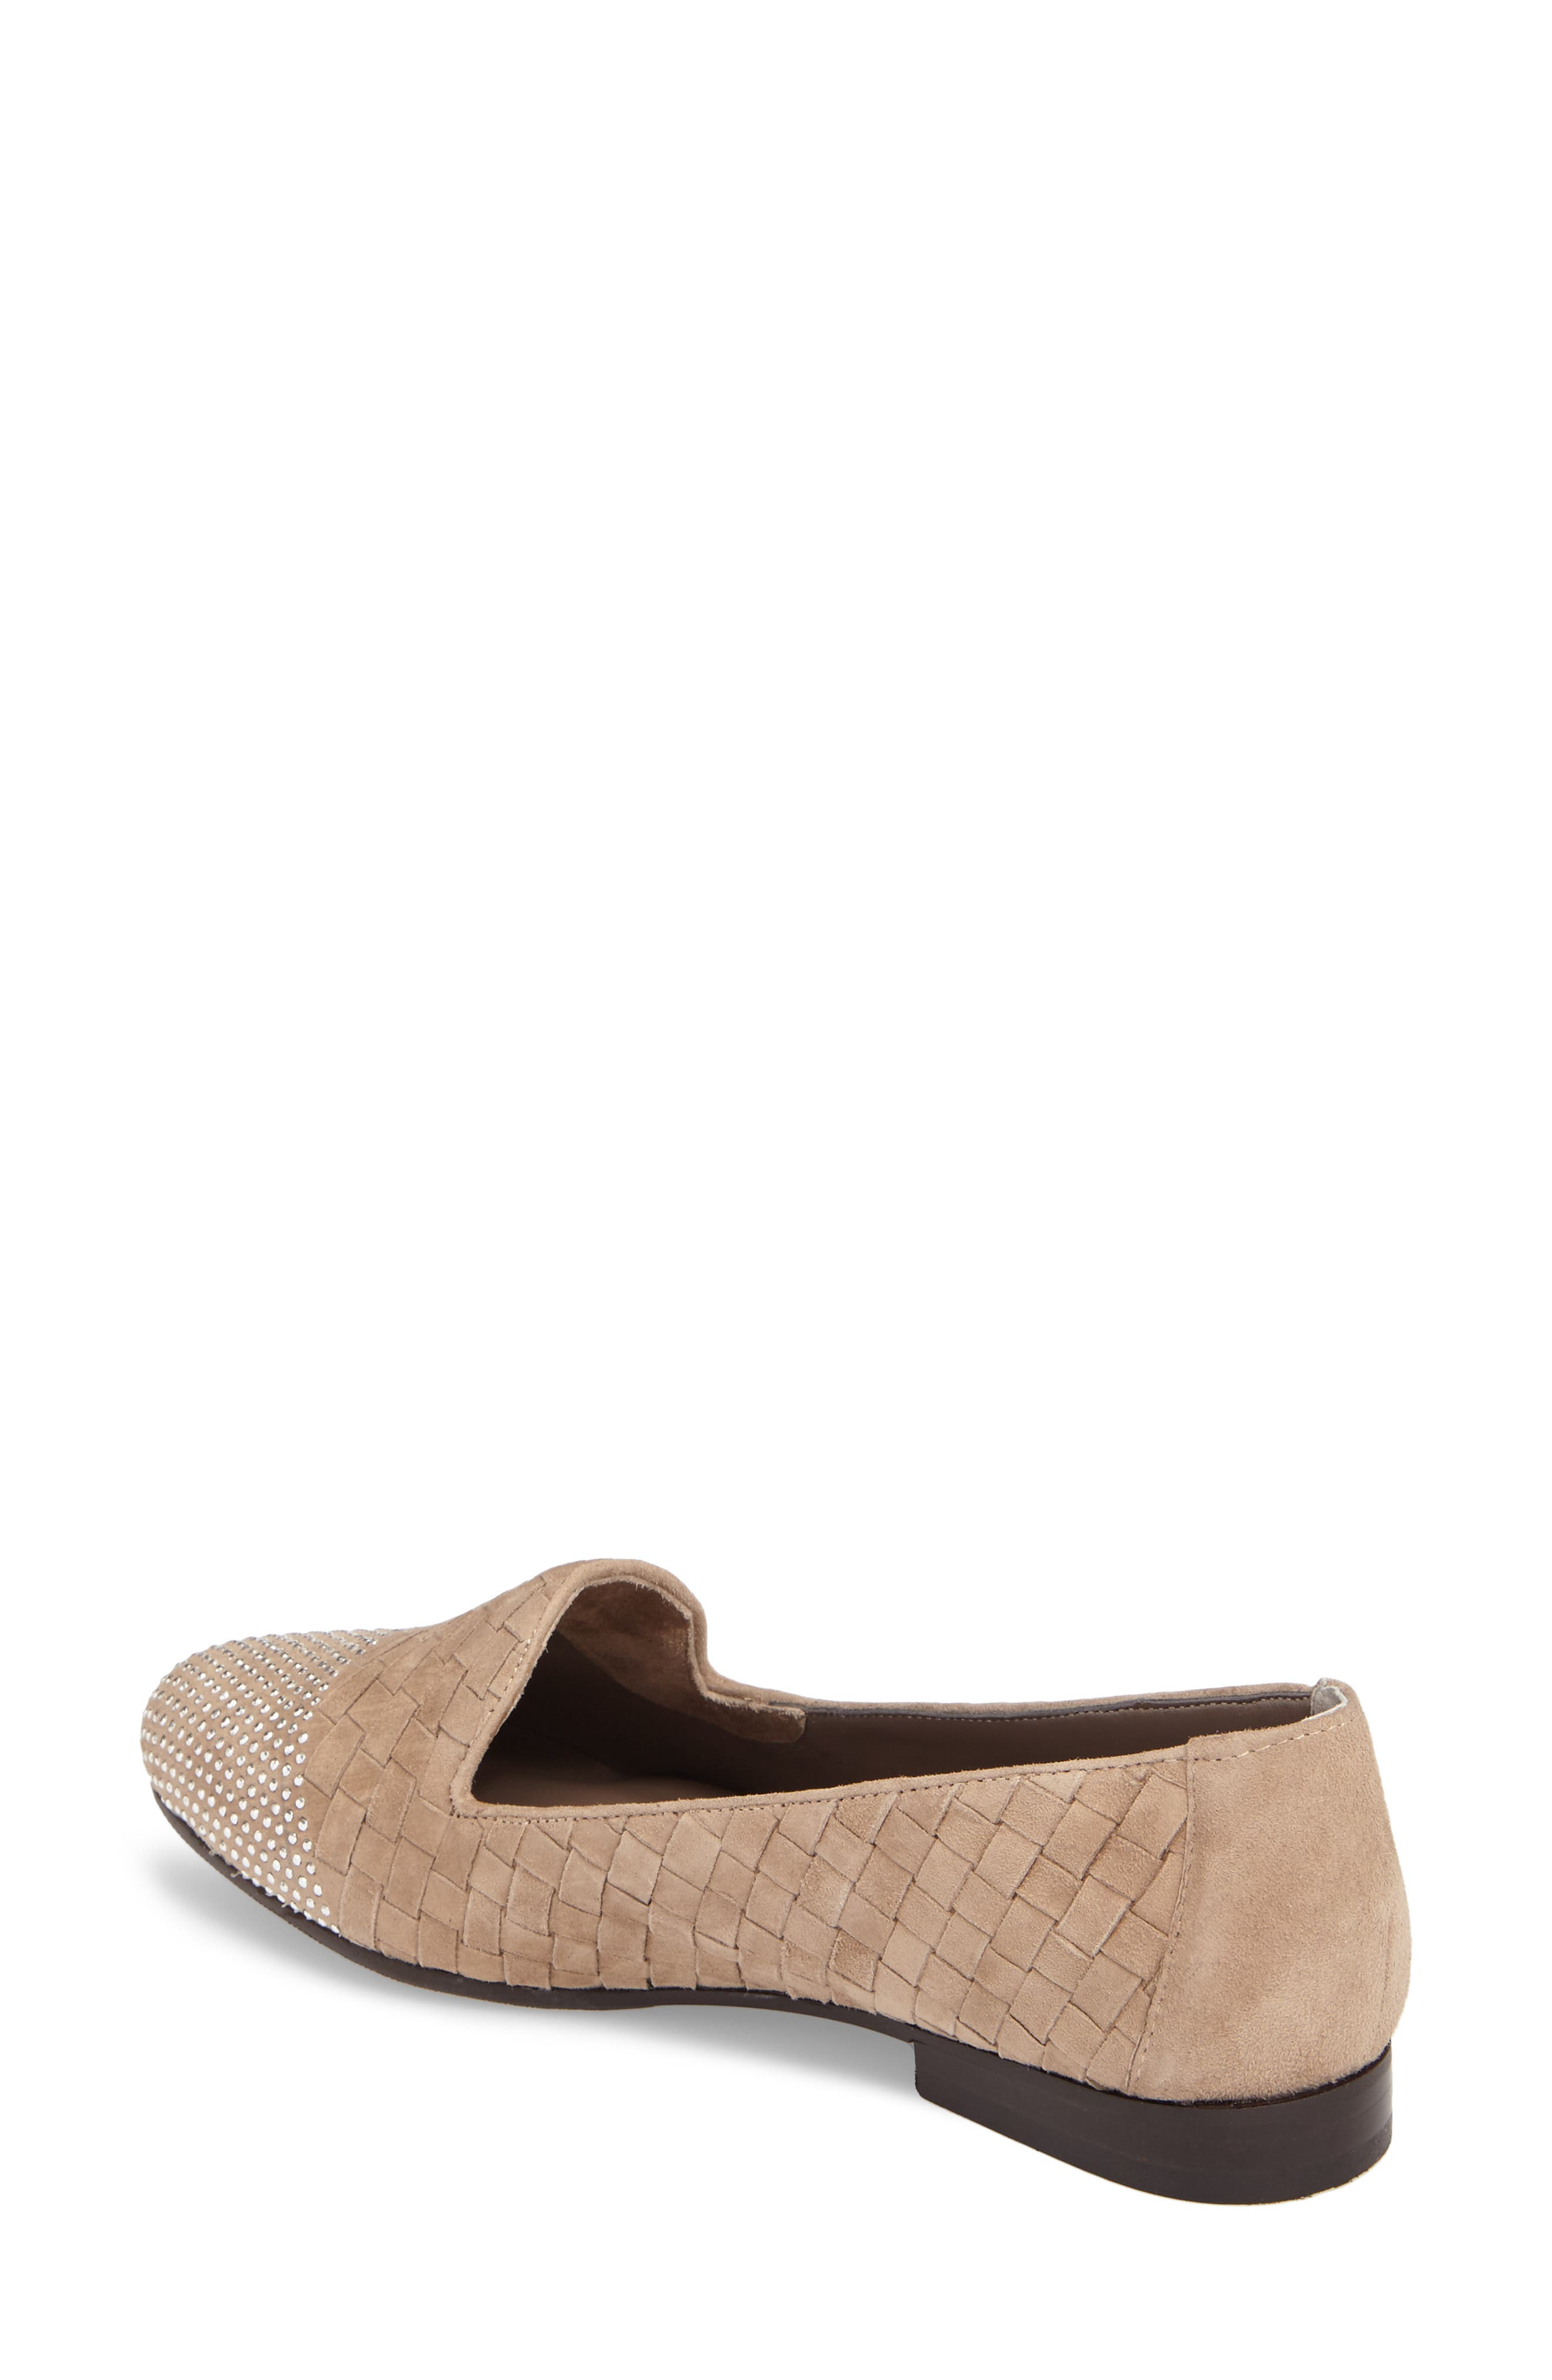 Nicia Flat,                             Alternate thumbnail 2, color,                             Light Taupe Suede